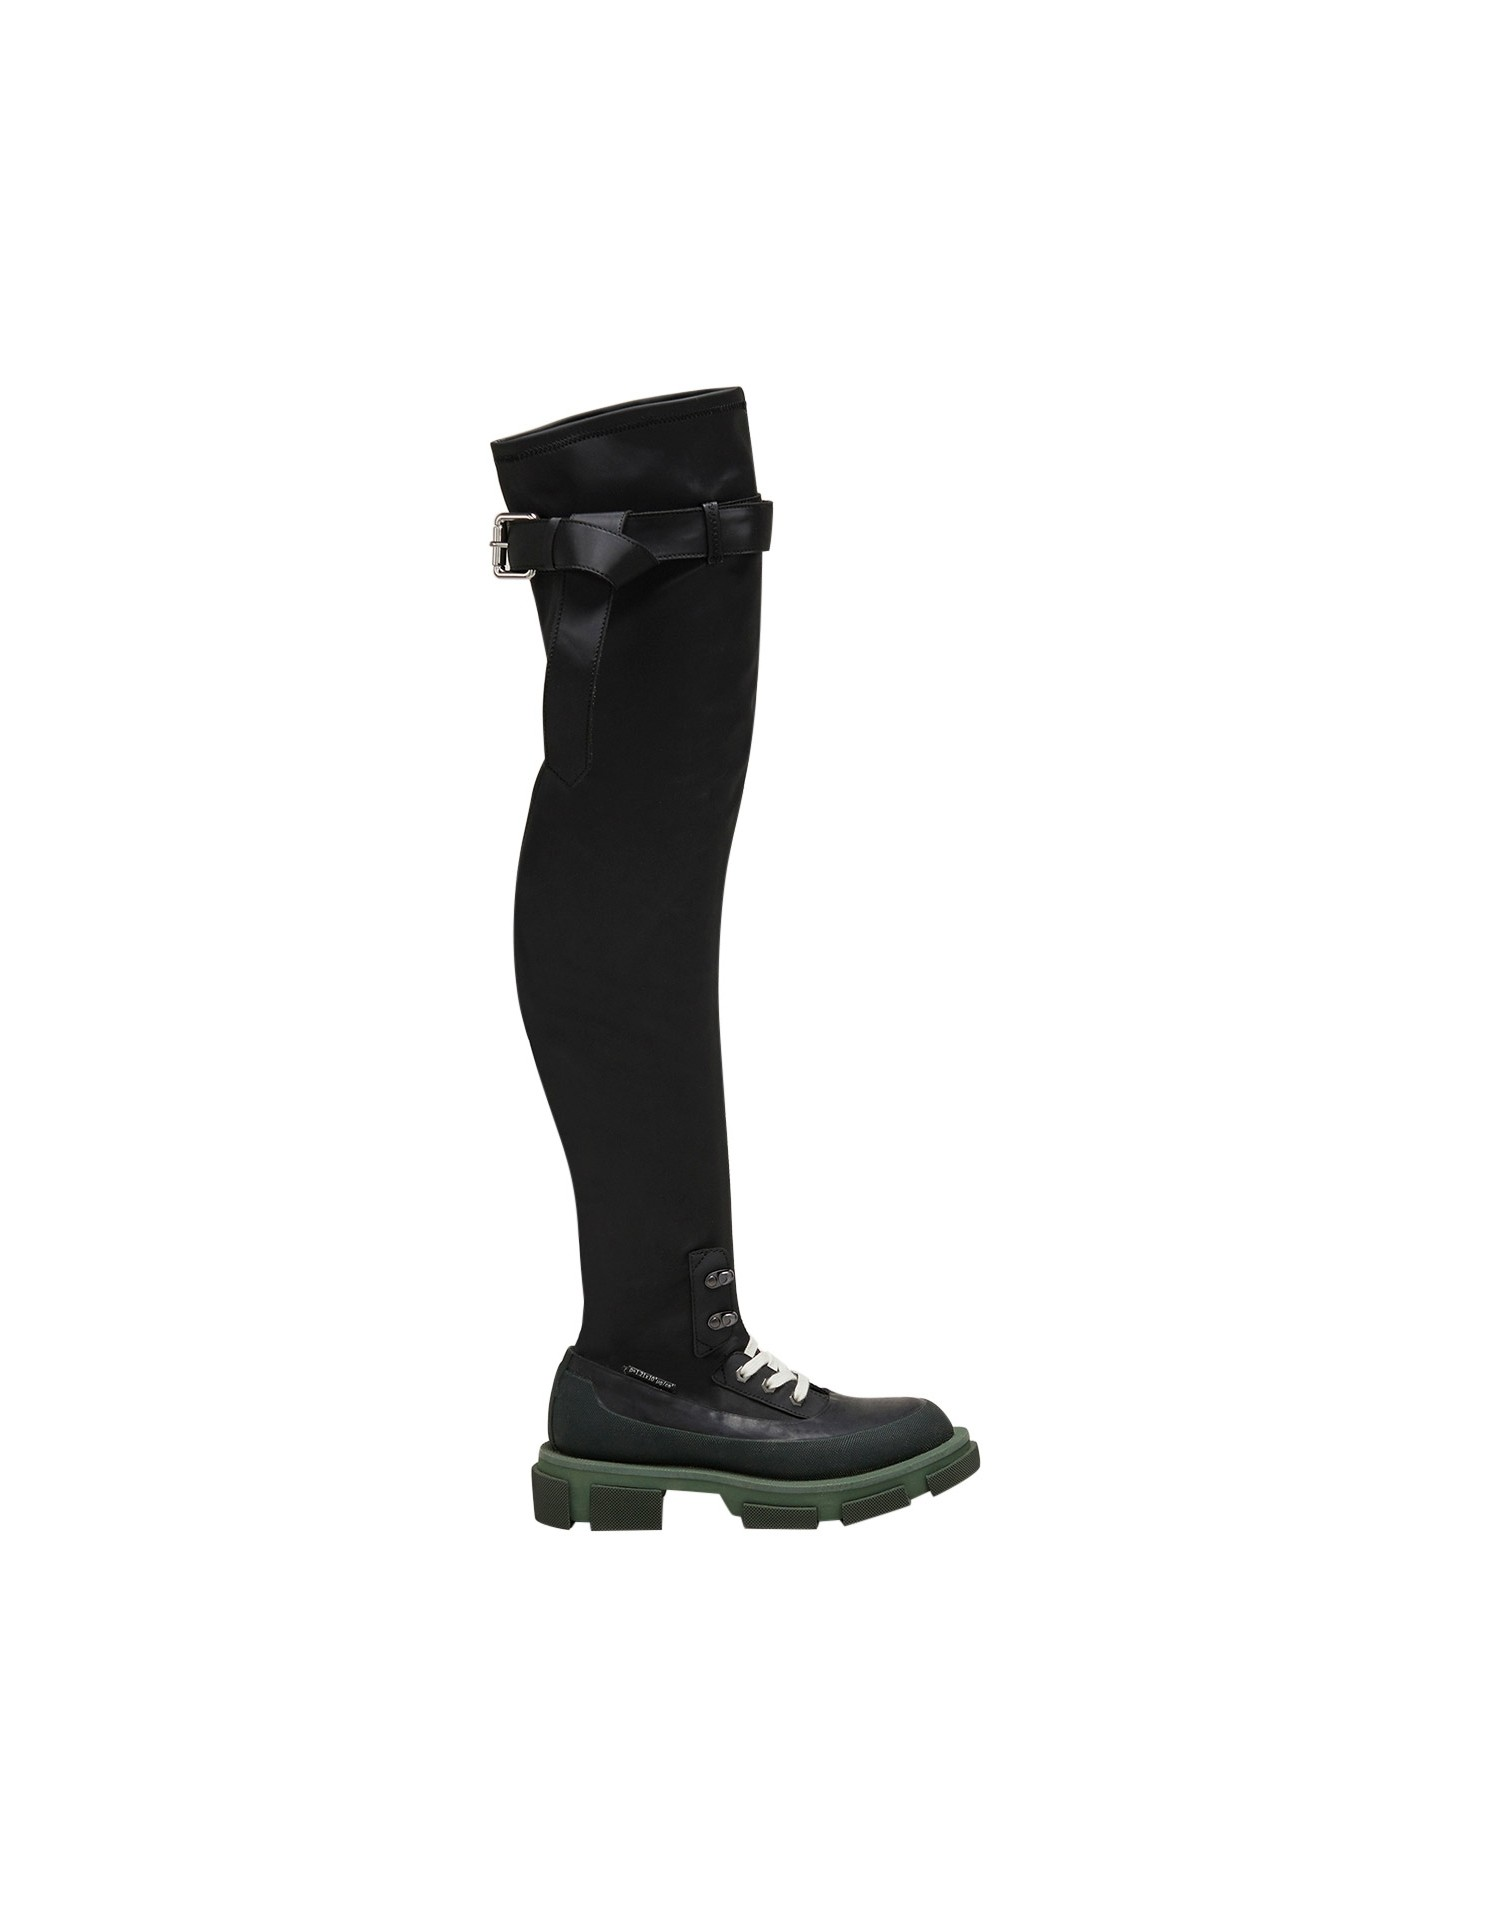 Both x MONSE Gao Thigh High Boots in Olive and Black Right Side Side View